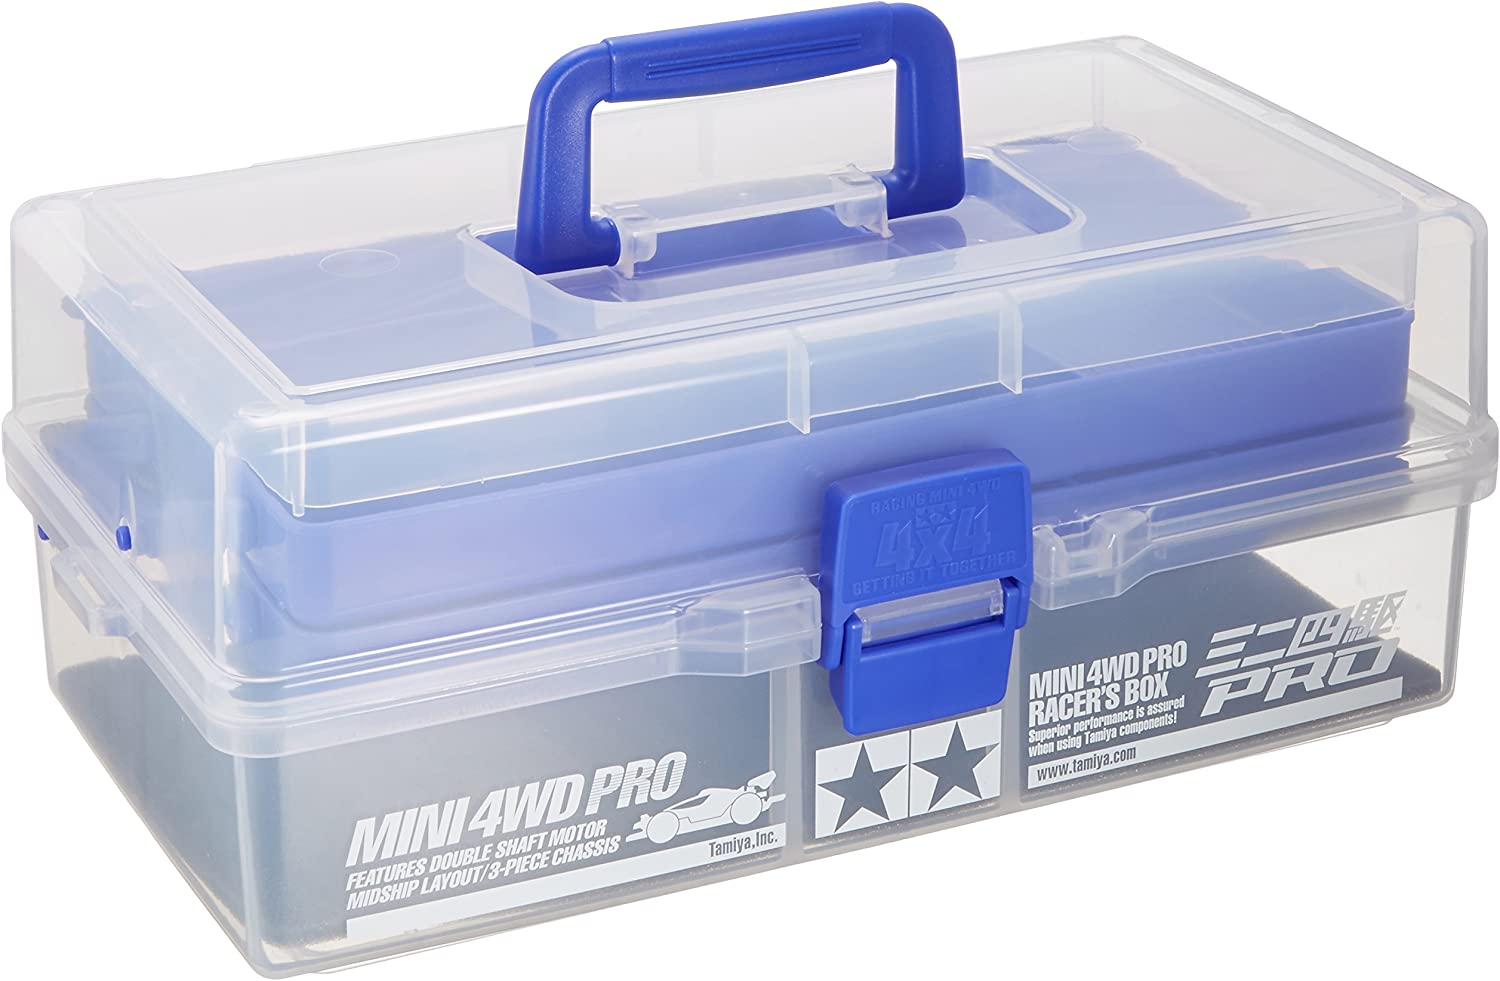 Tamiya JR Mini 4WD Pro Racer's Box (japan import)